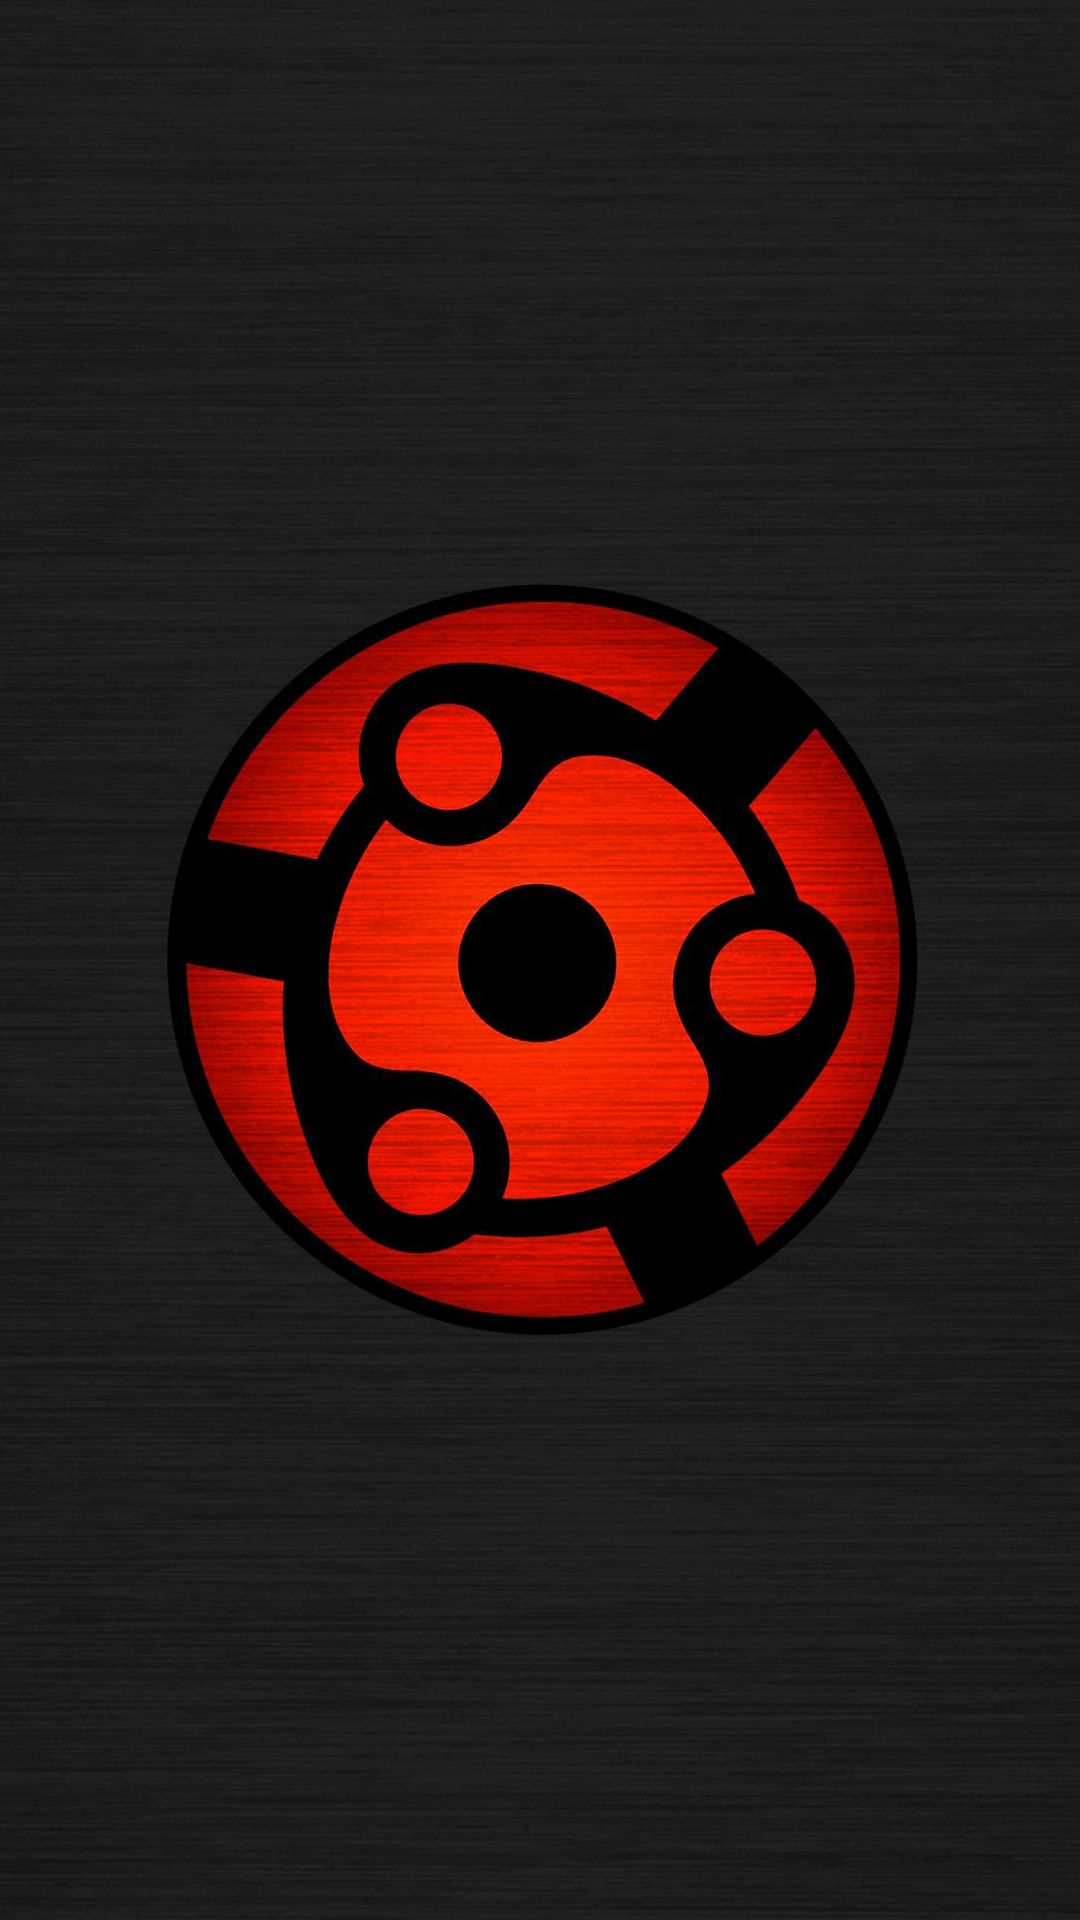 1080x1920 1080x1920 naruto, red, wallpaper, black, minimalism desktop ...